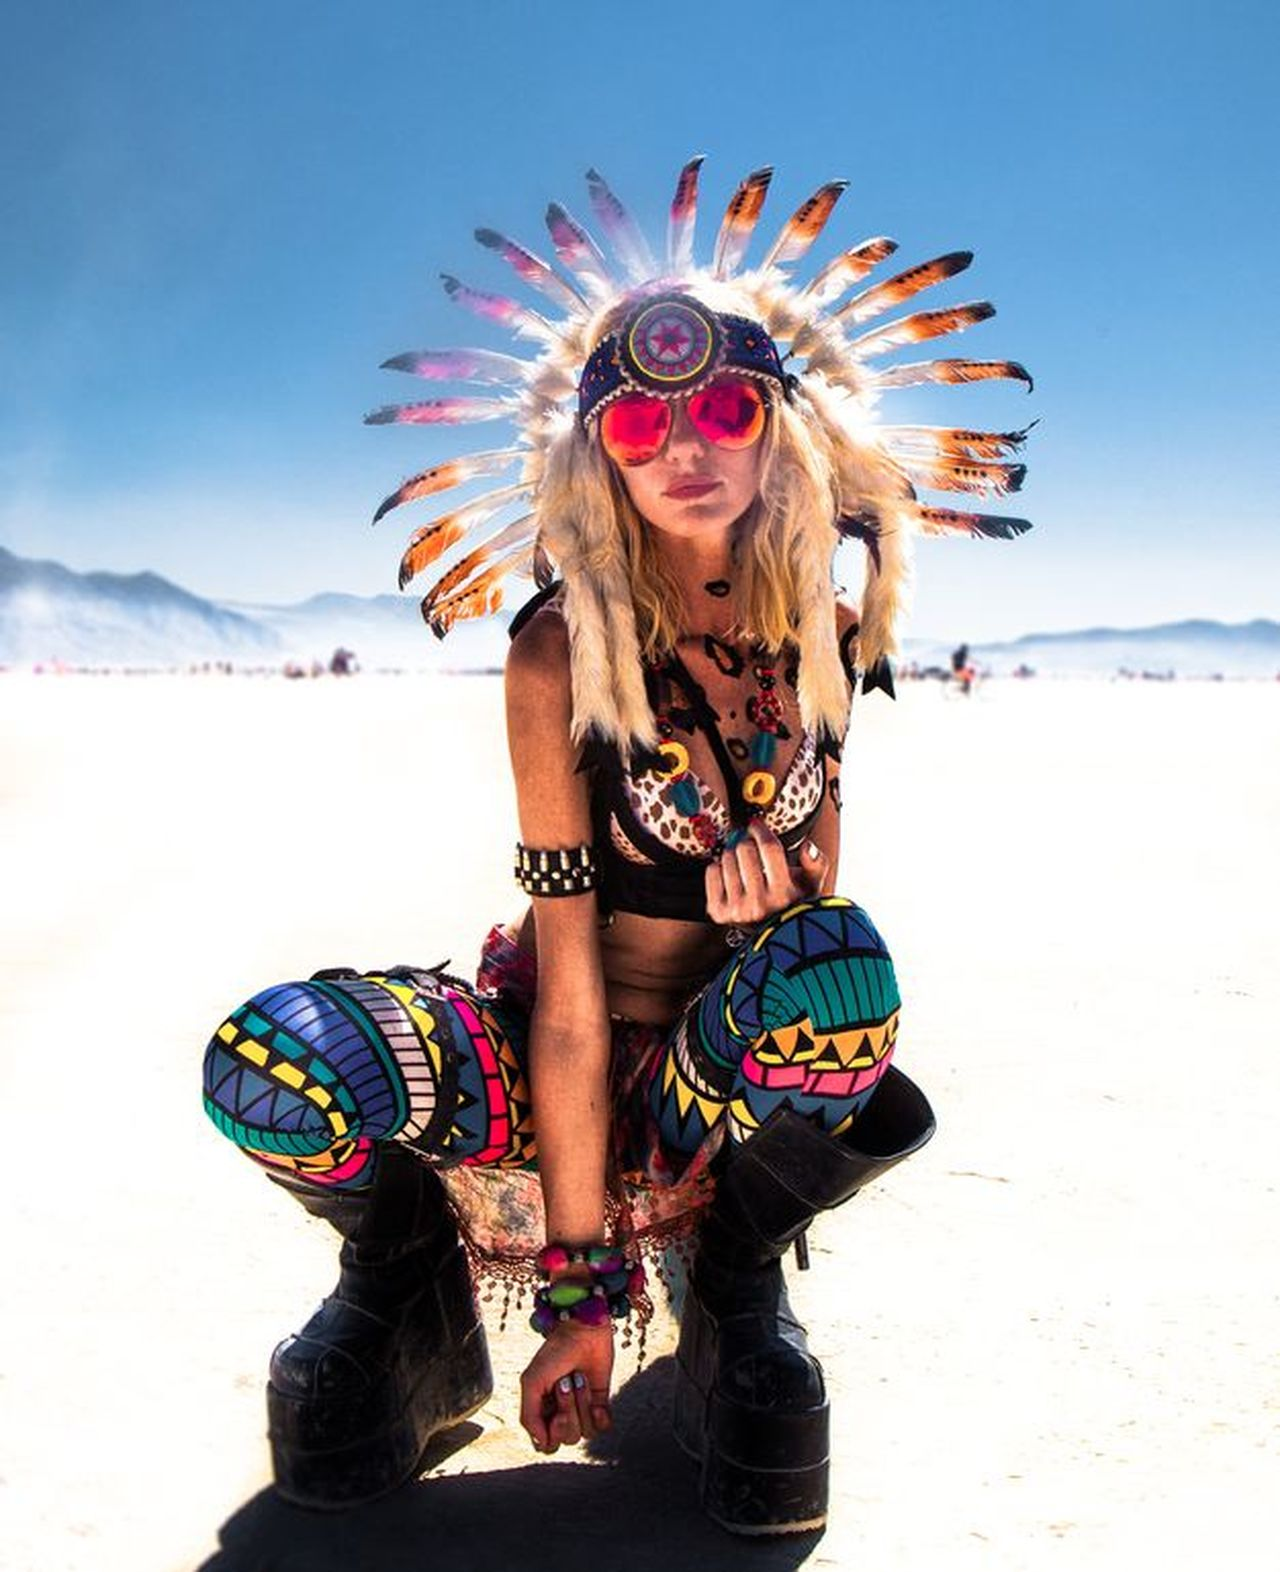 Feather  Only Women One Woman Only Portrait Adult Adults Only One Young Woman Only One Person Looking At Camera Headdress People Sand Young Women Happiness Beautiful Woman Young Adult Women Sea Multi Colored Beauty